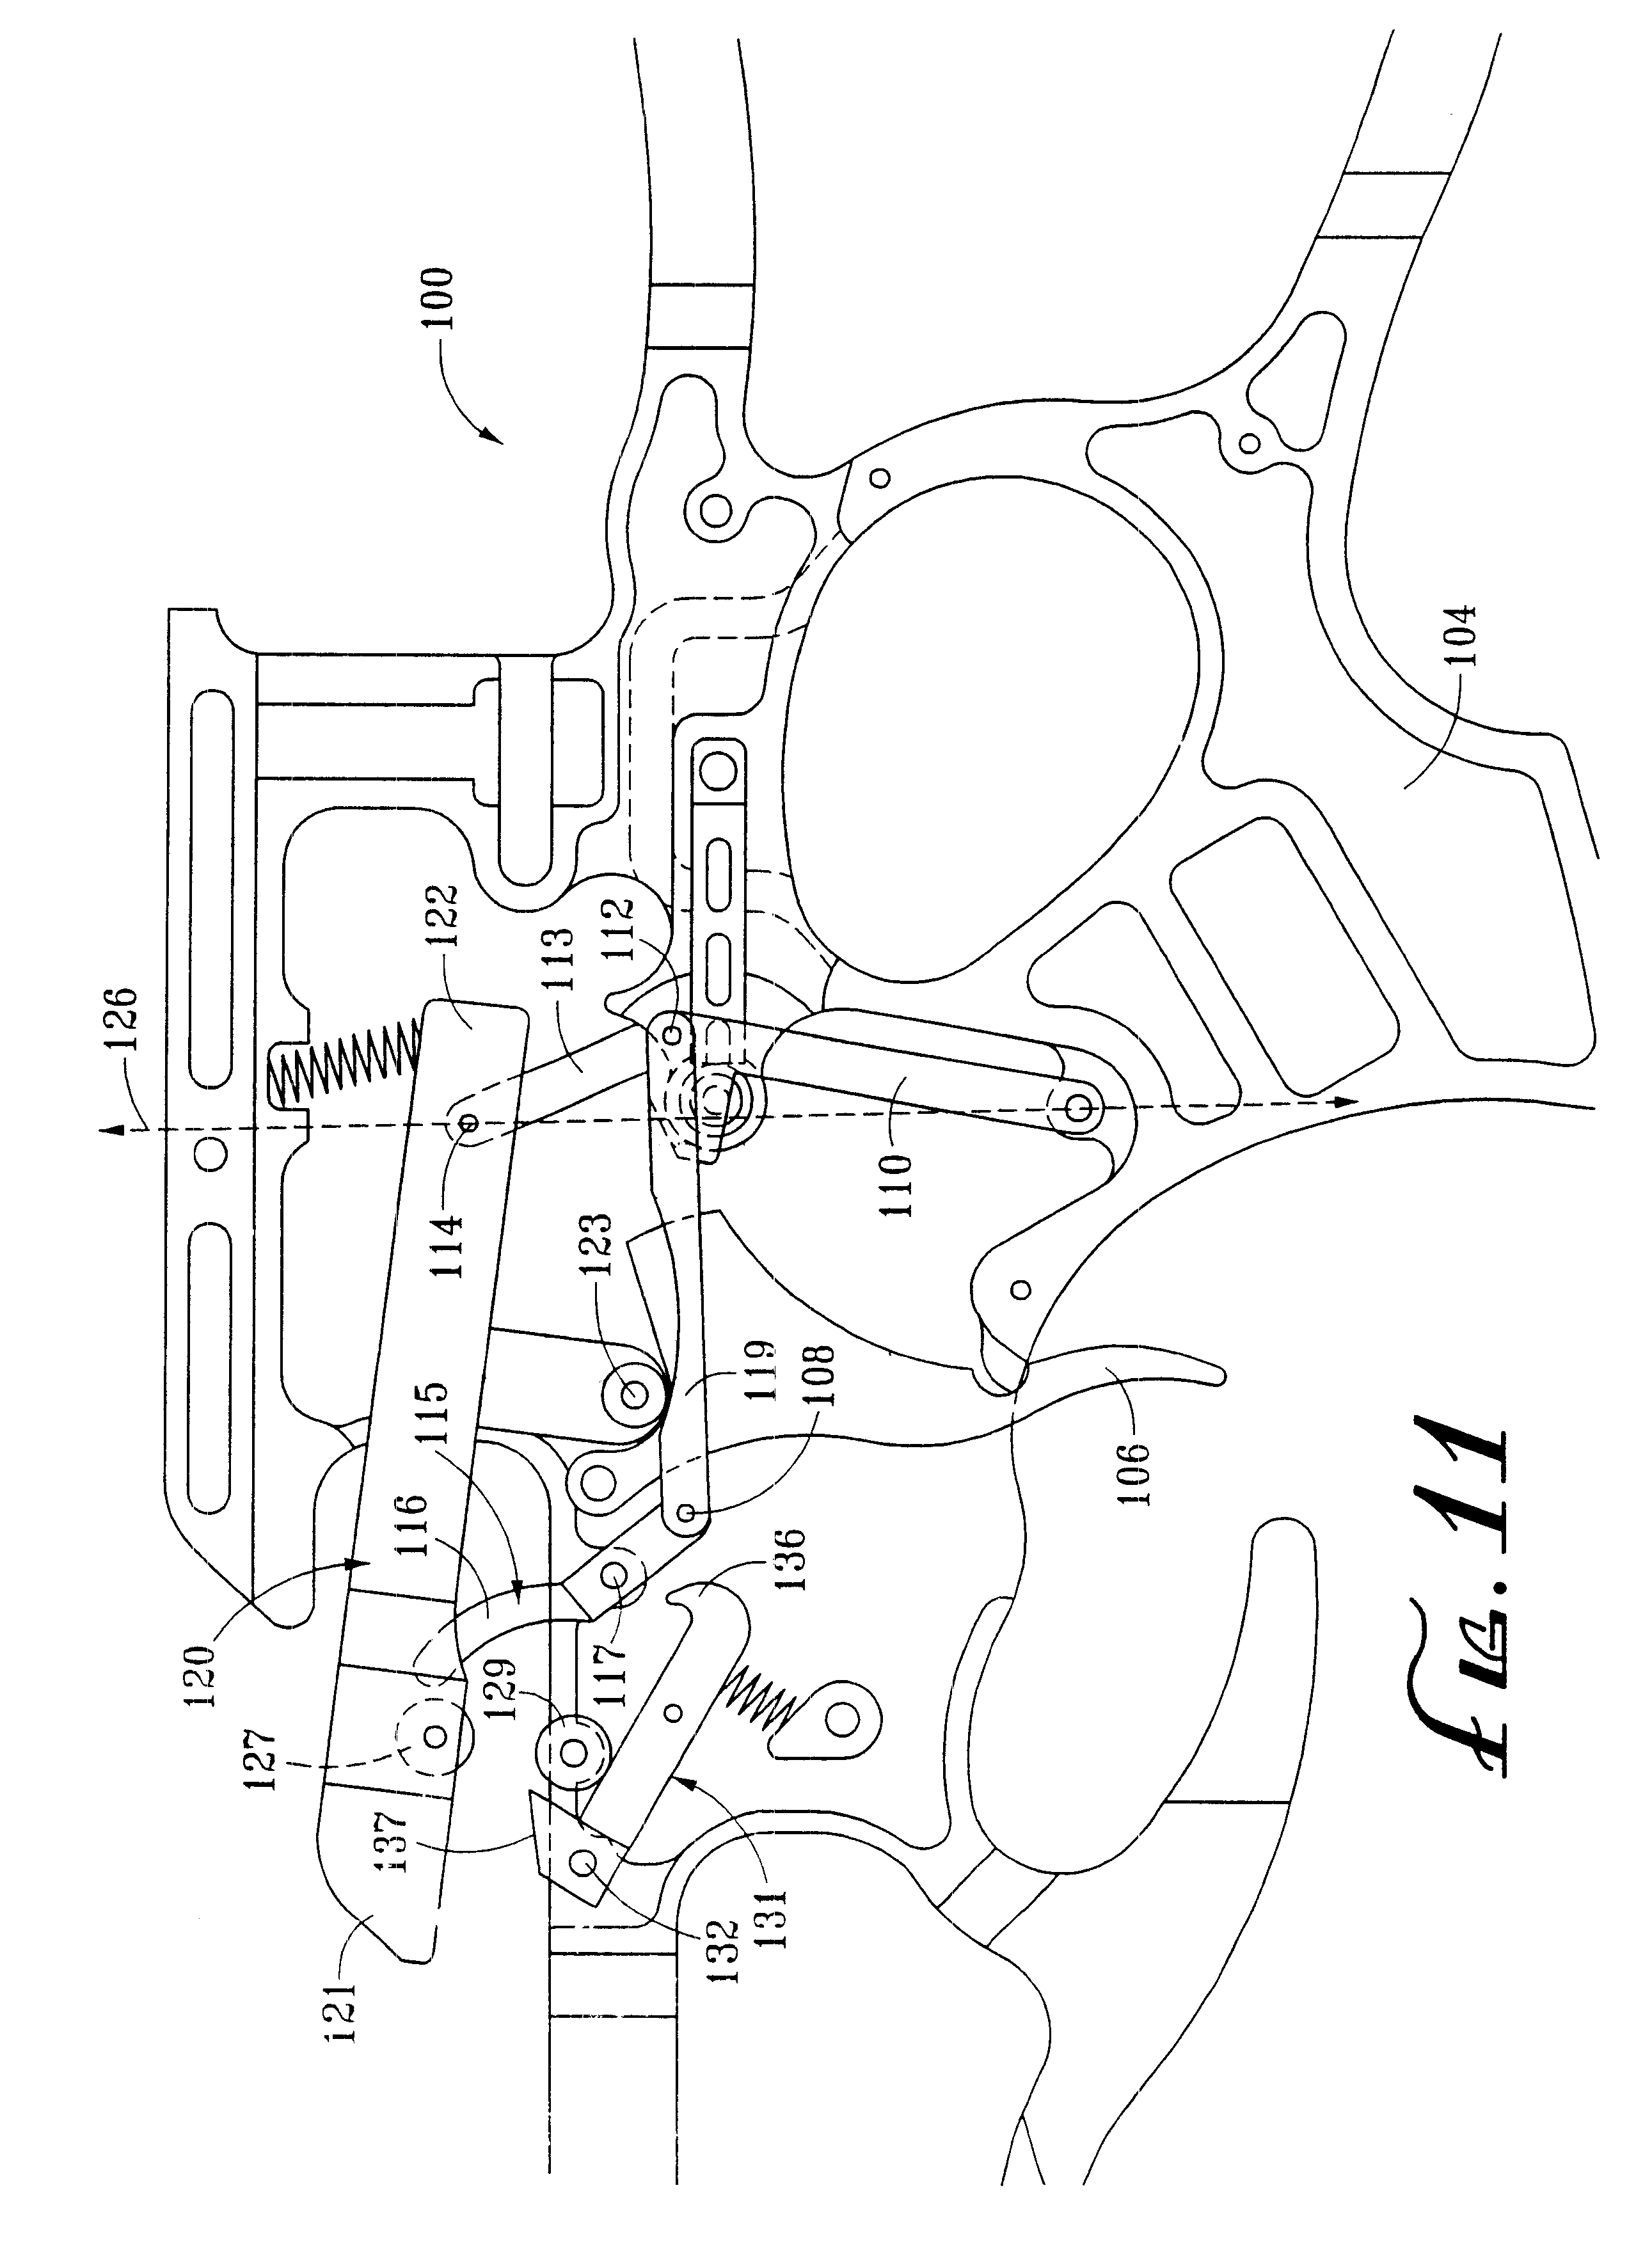 patent us6425386 bowstring release system for crossbows Crossbow Pattern patent drawing